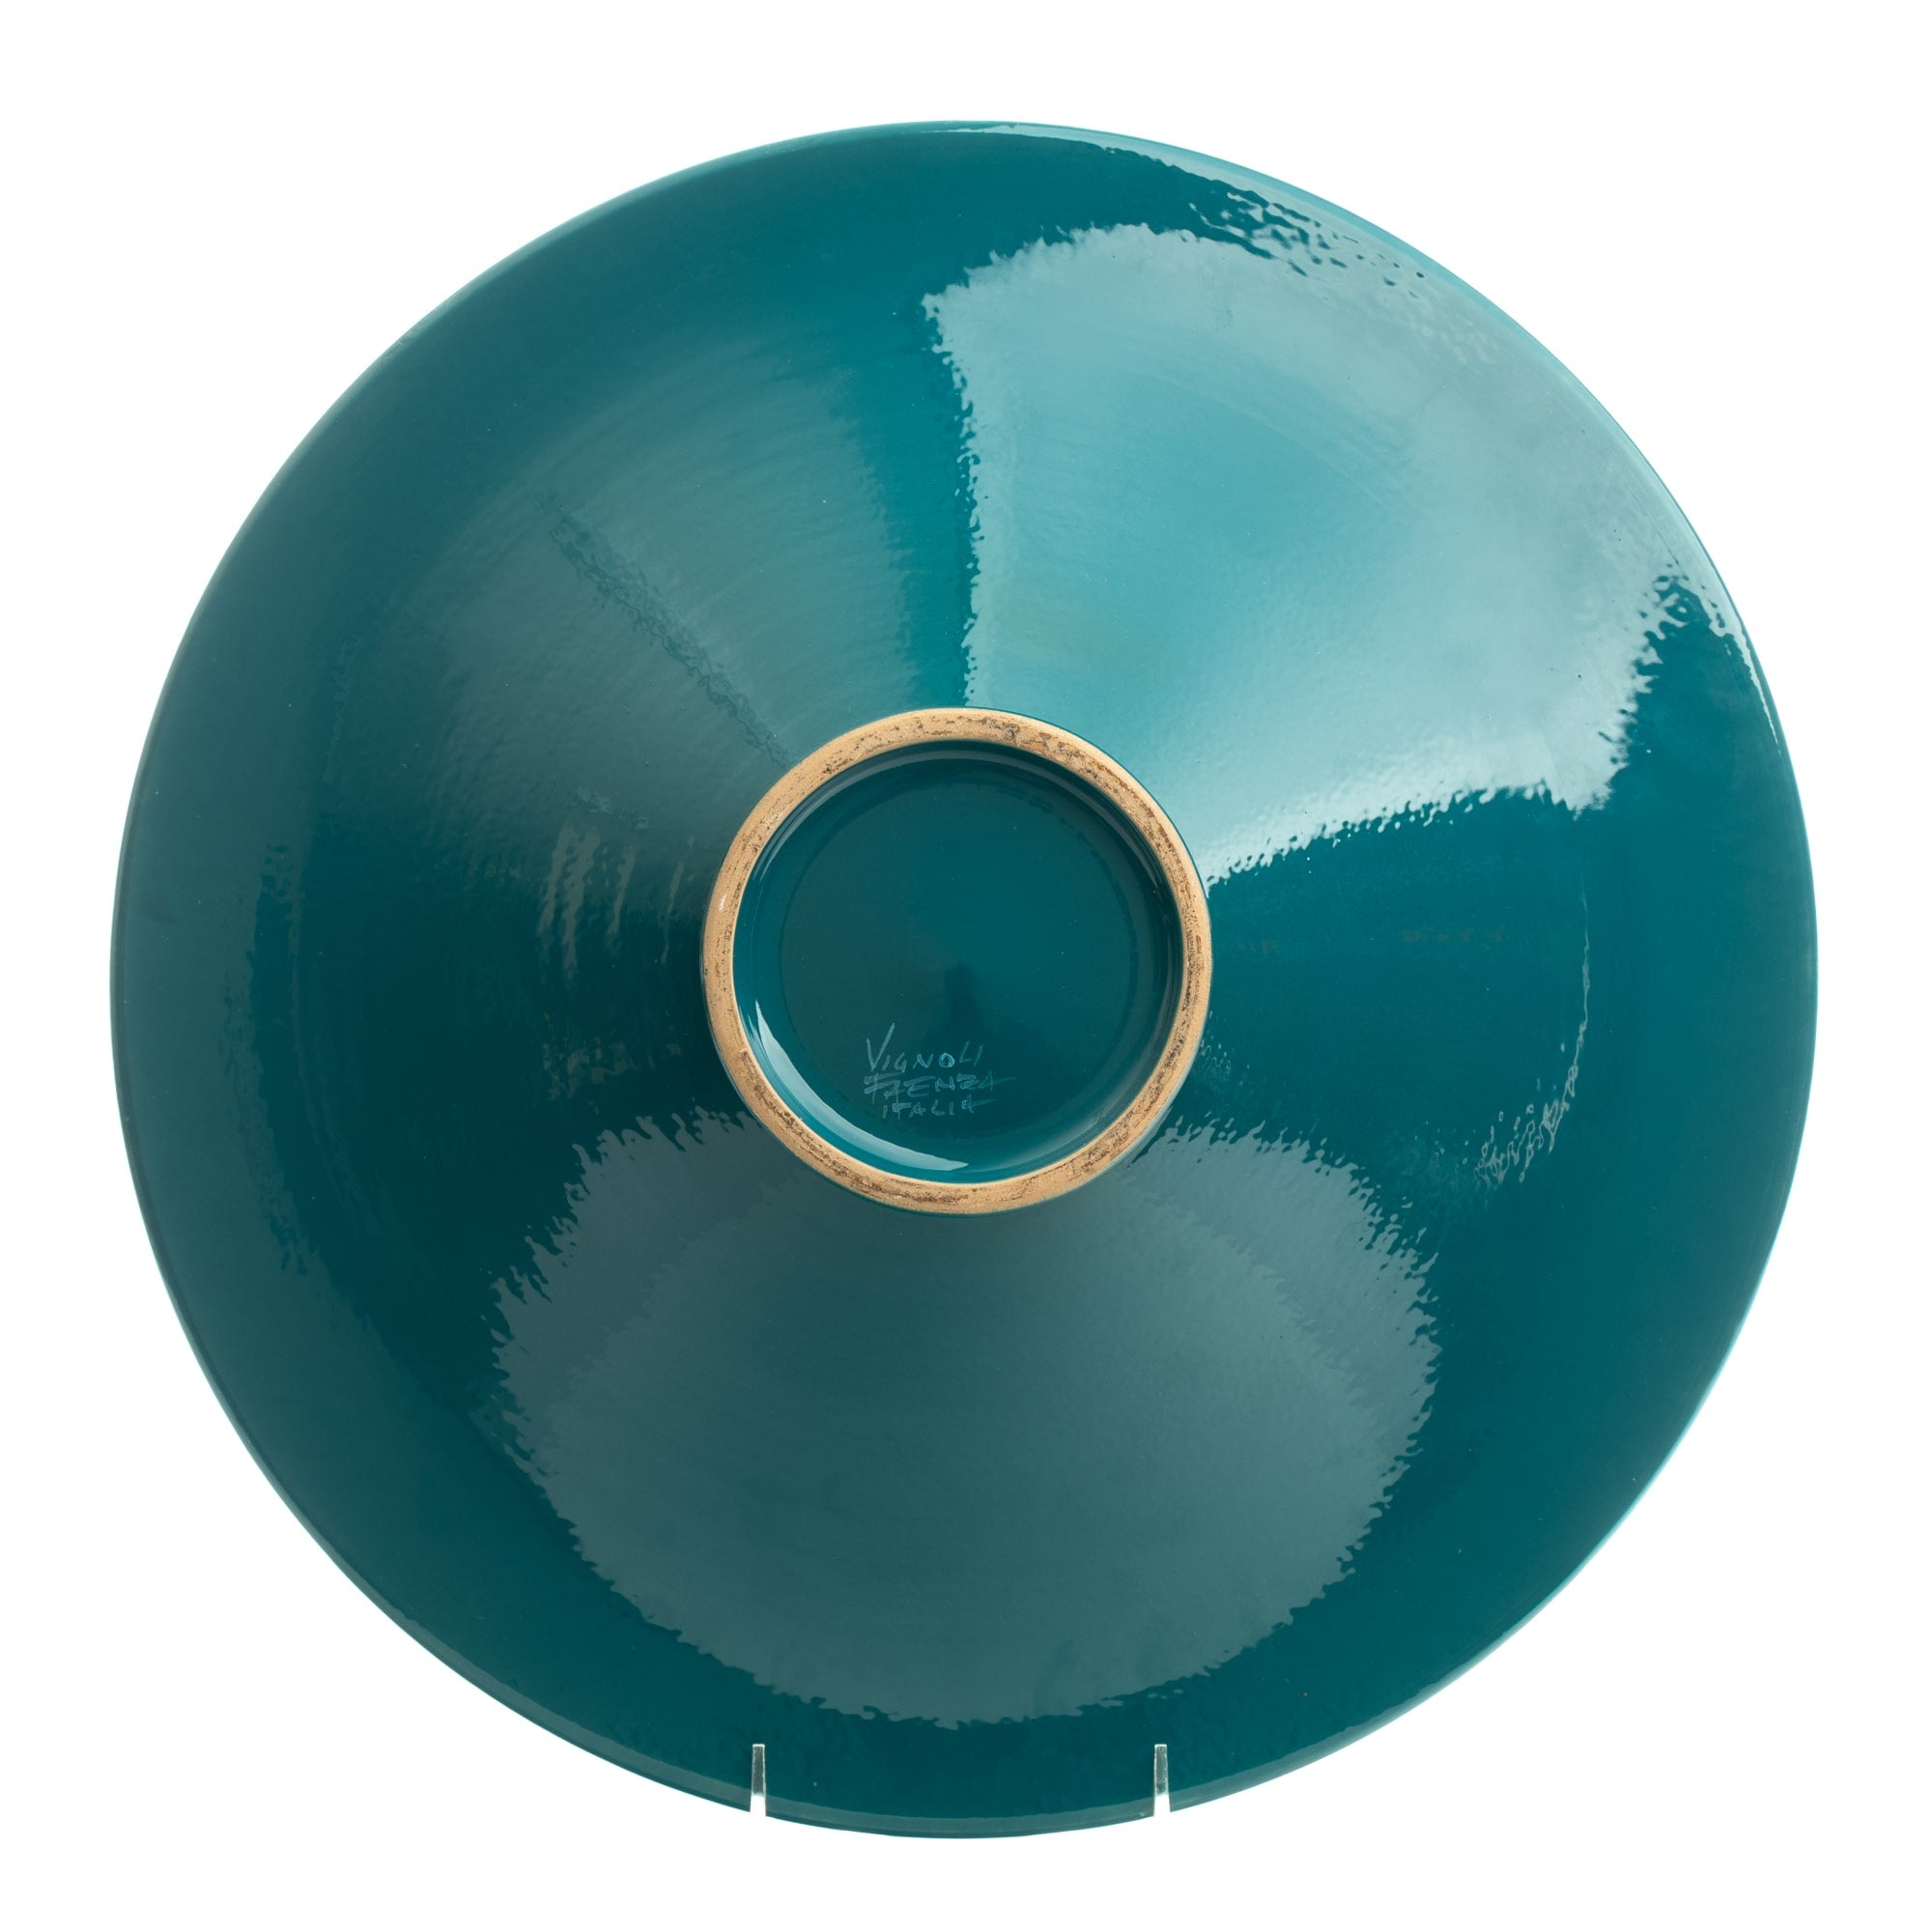 "Vignoli 16"" Teal Anchovie Go Round Wall Plate"